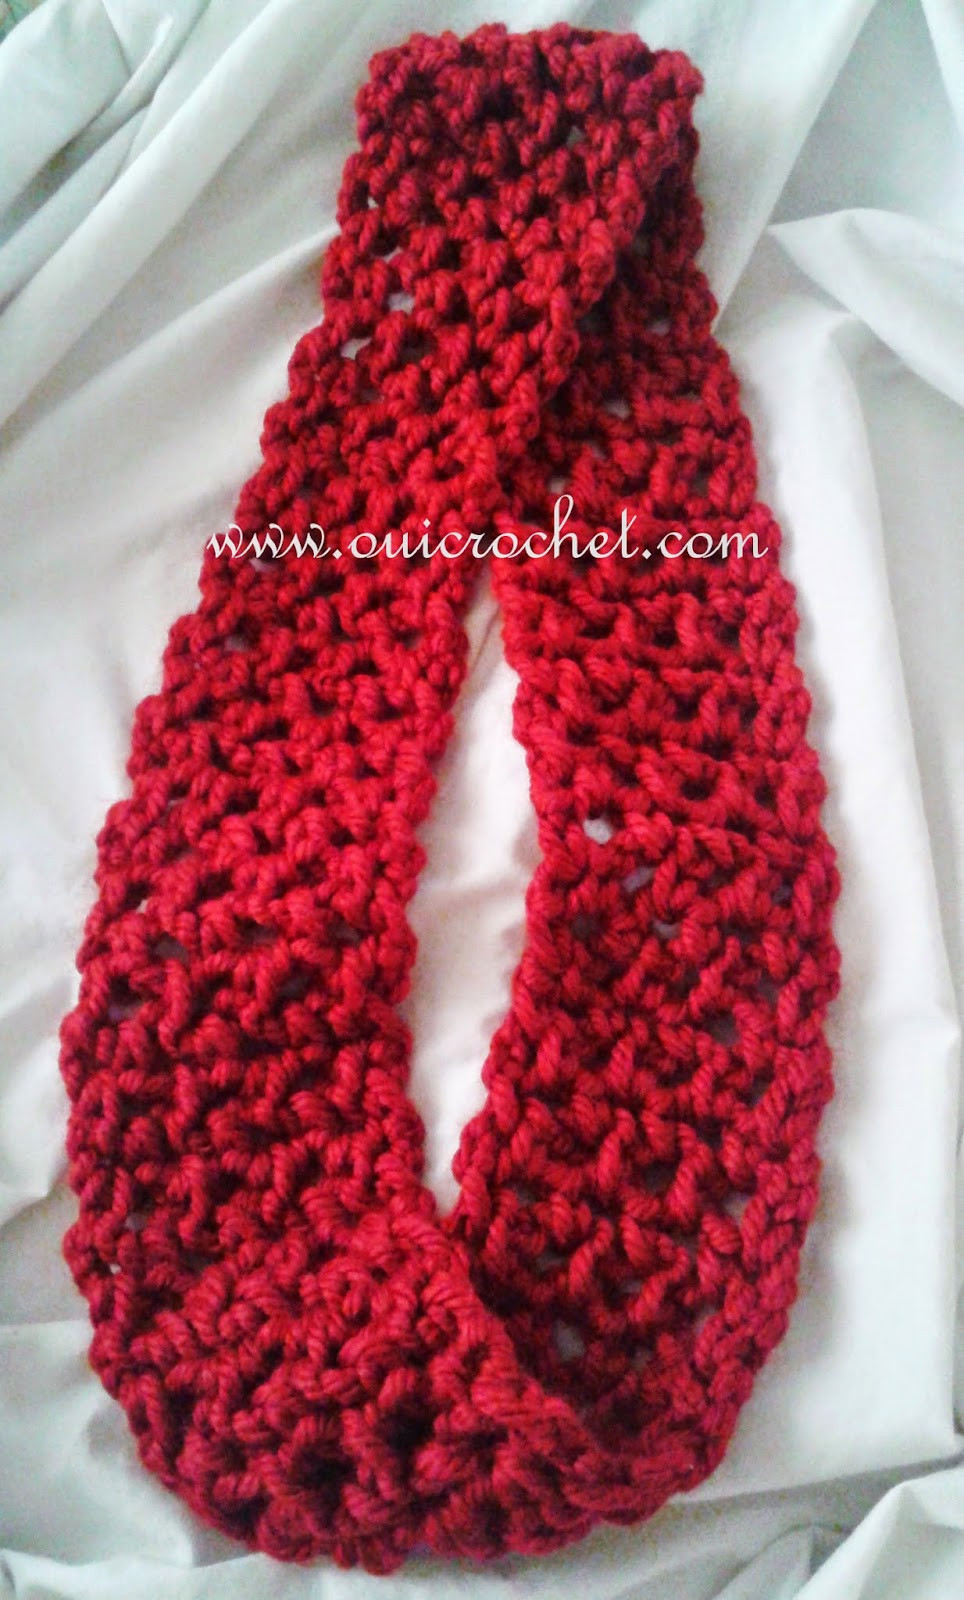 Bulky Yarn Crochet Patterns Lovely Crochet Scarf Pattern Bulky Yarn Dancox for Of Charming 49 Images Bulky Yarn Crochet Patterns